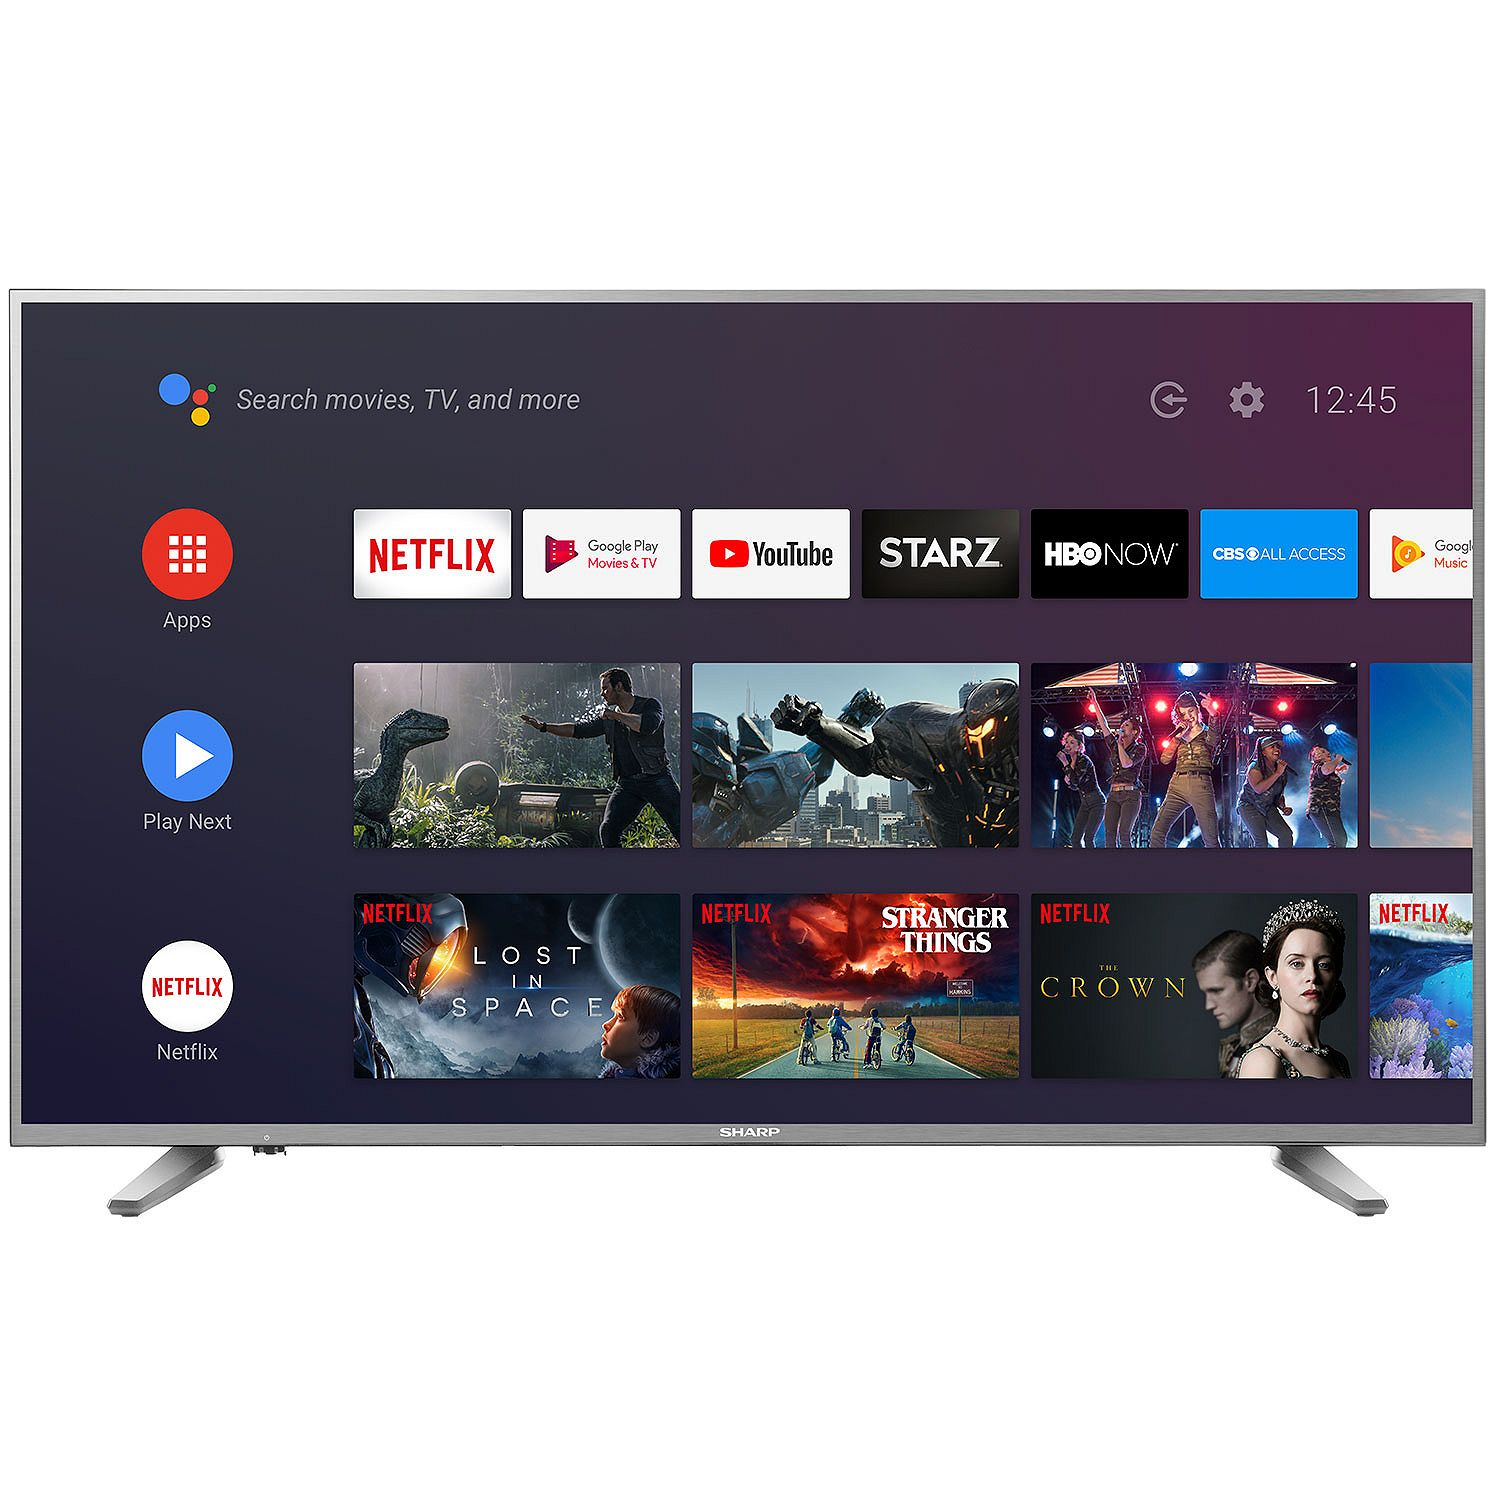 Sharp 58-In Class 4K Smart TV.